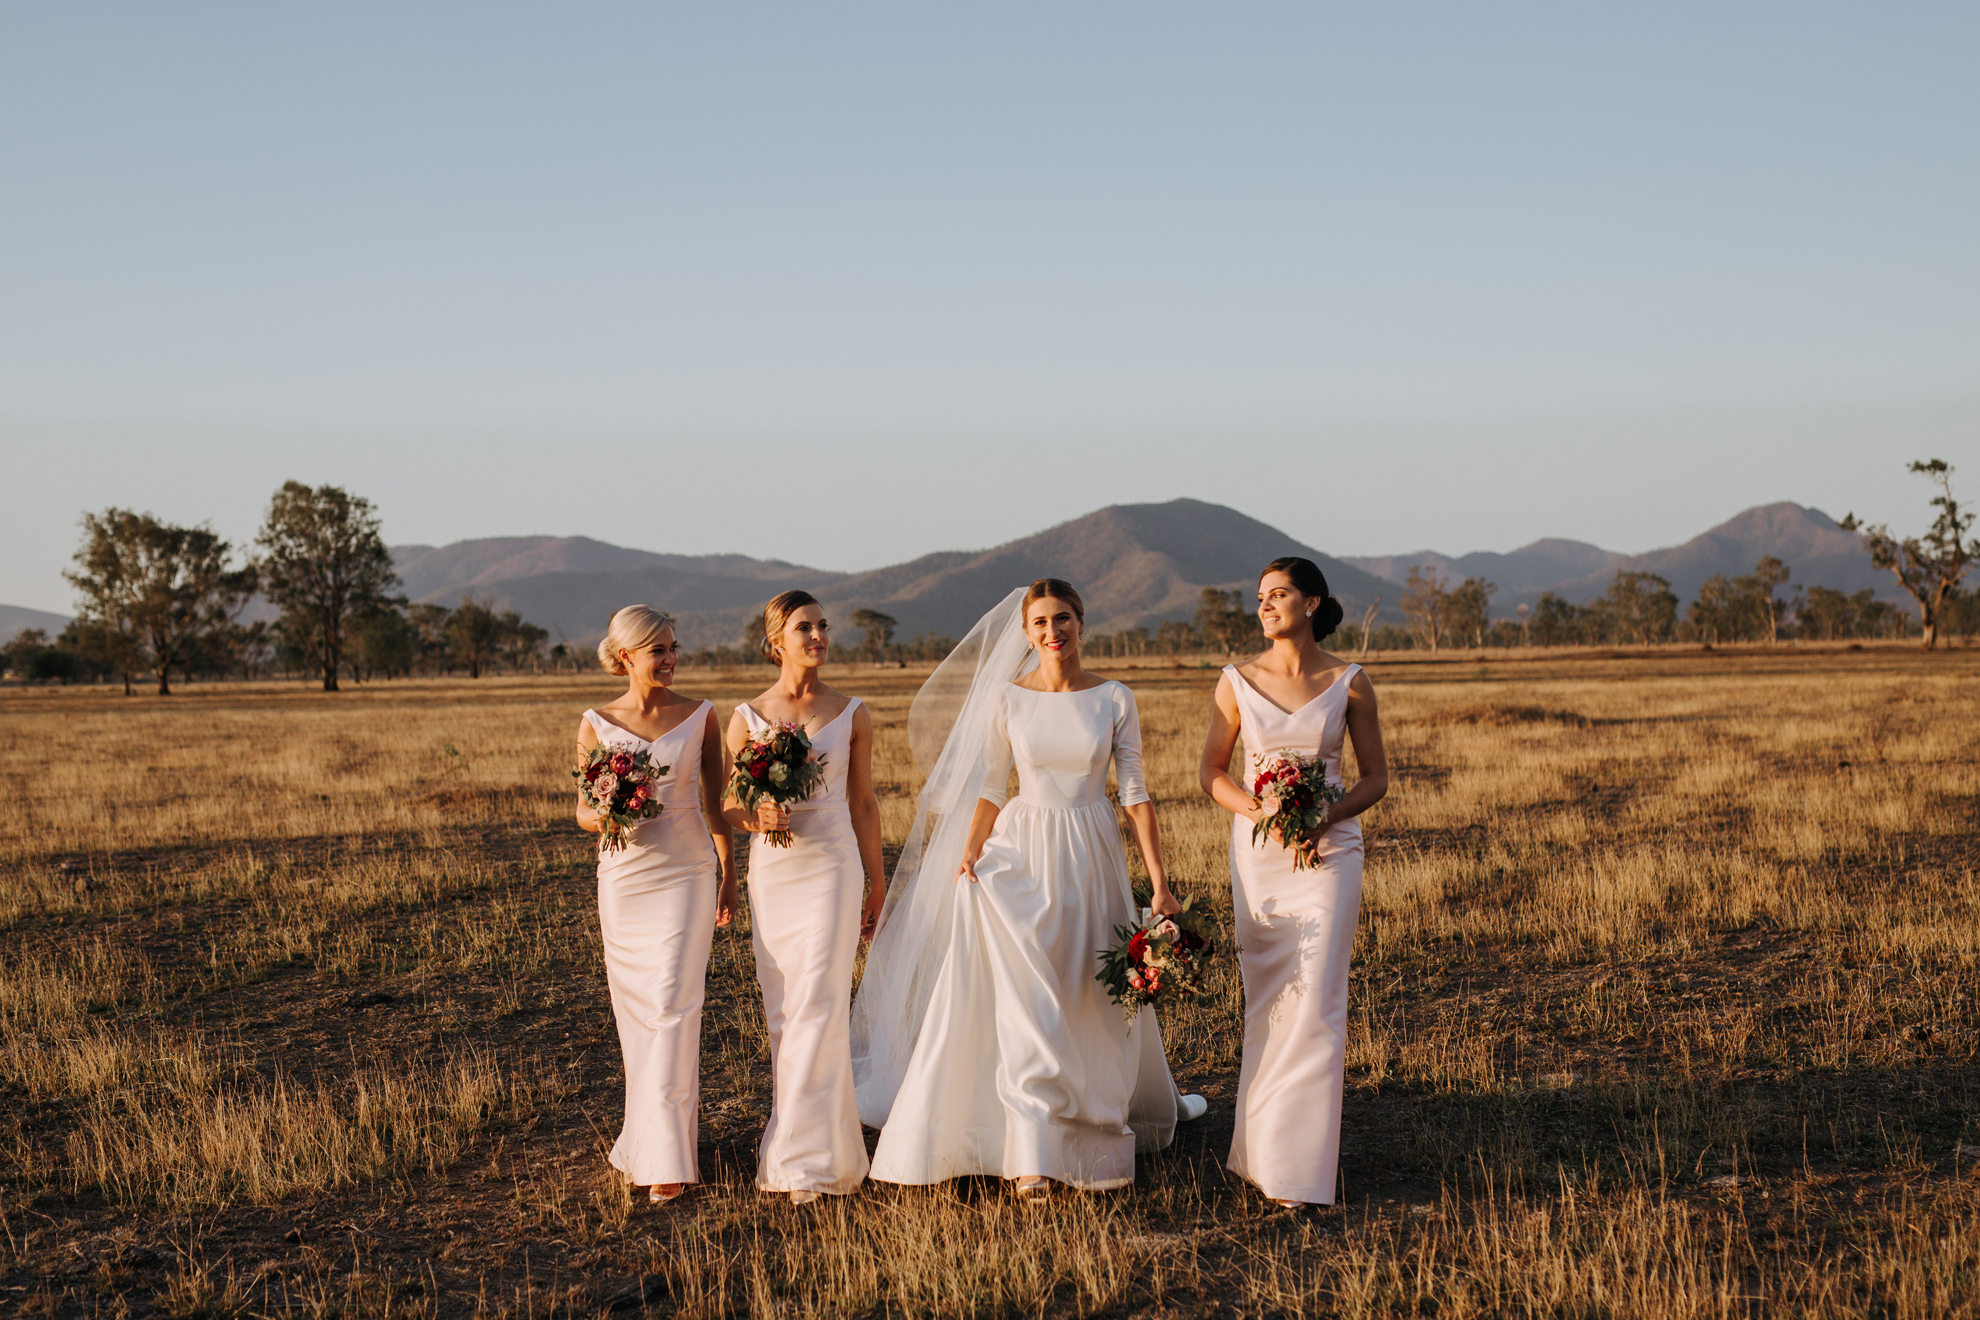 057-Chloe_Joe_Rockhampton_Wedding.jpg